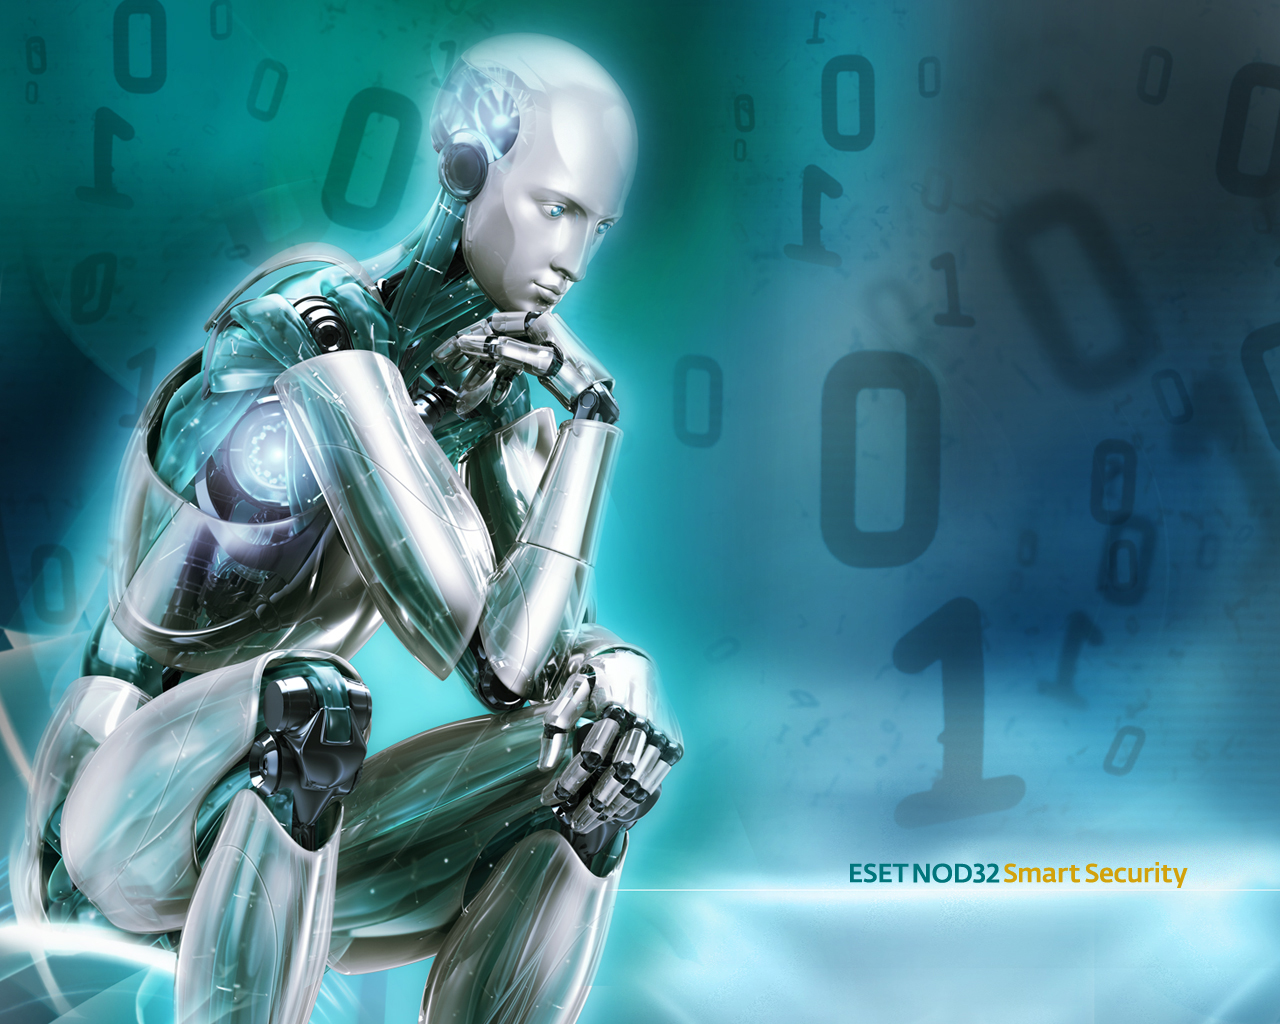 ESET NOD32 Antivirus y ESET Smart Security, la solución de seguridad